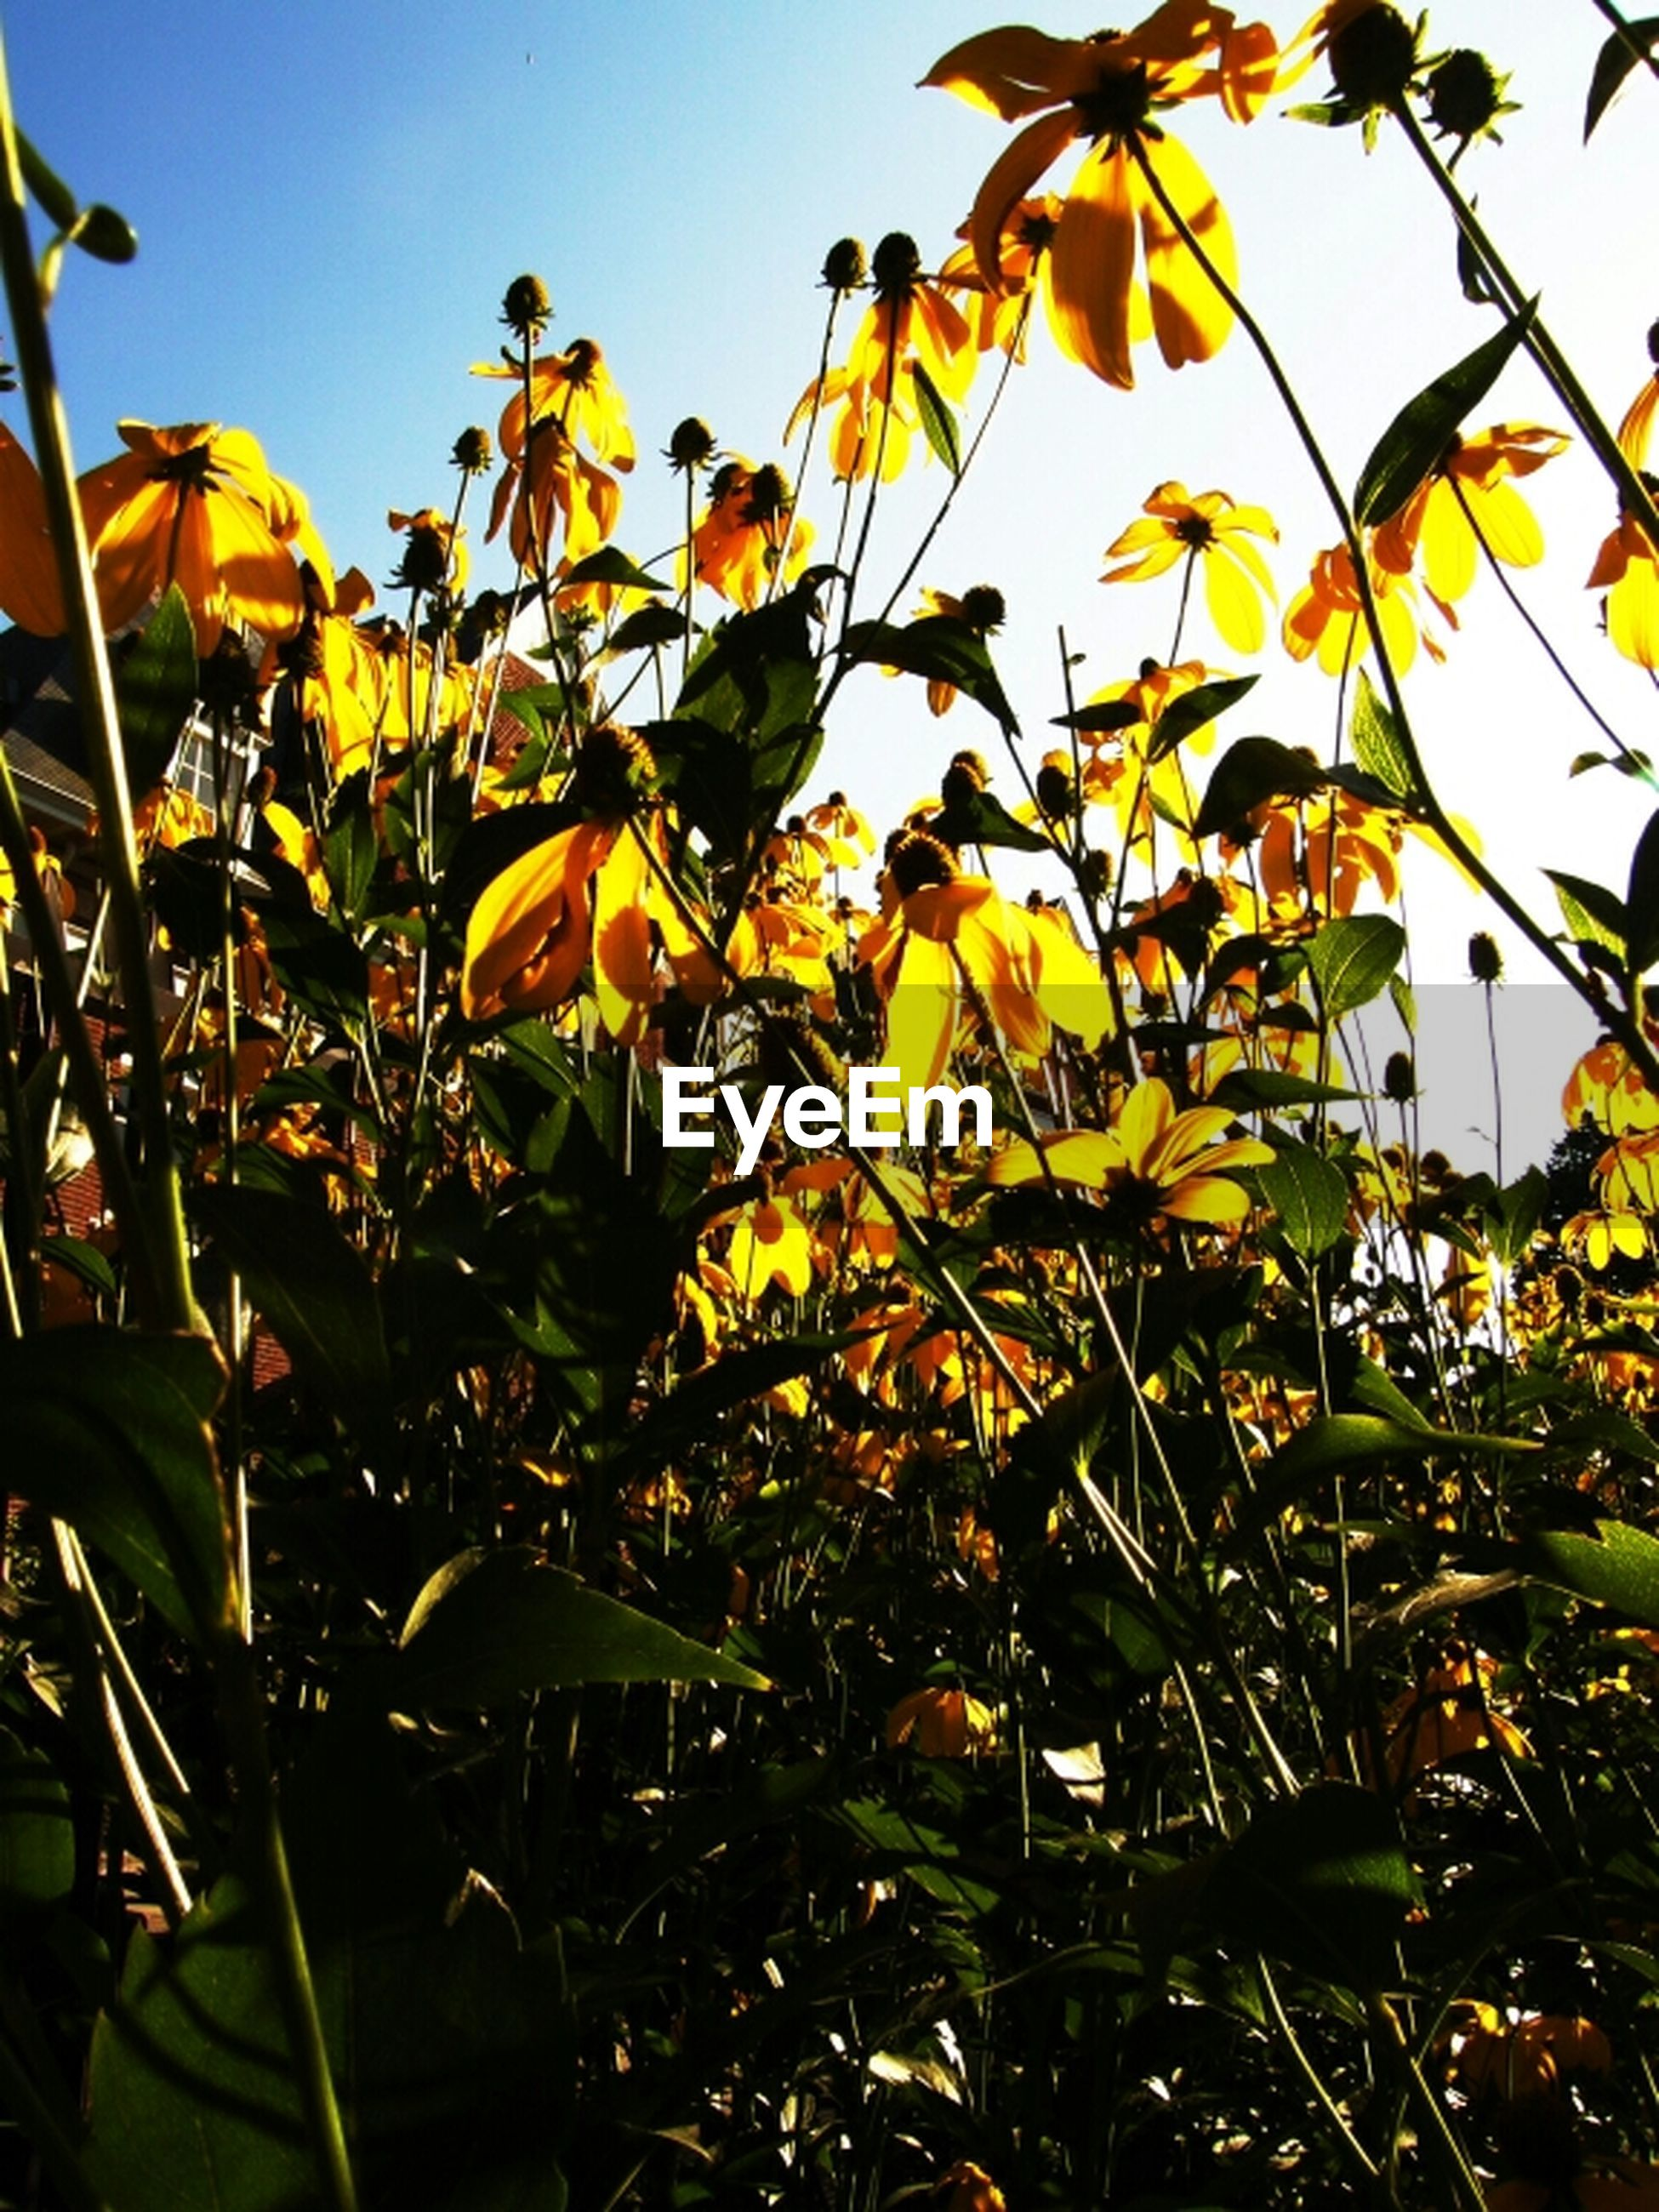 growth, yellow, leaf, low angle view, tree, branch, clear sky, nature, sky, beauty in nature, sunlight, plant, freshness, outdoors, day, no people, flower, autumn, close-up, blue